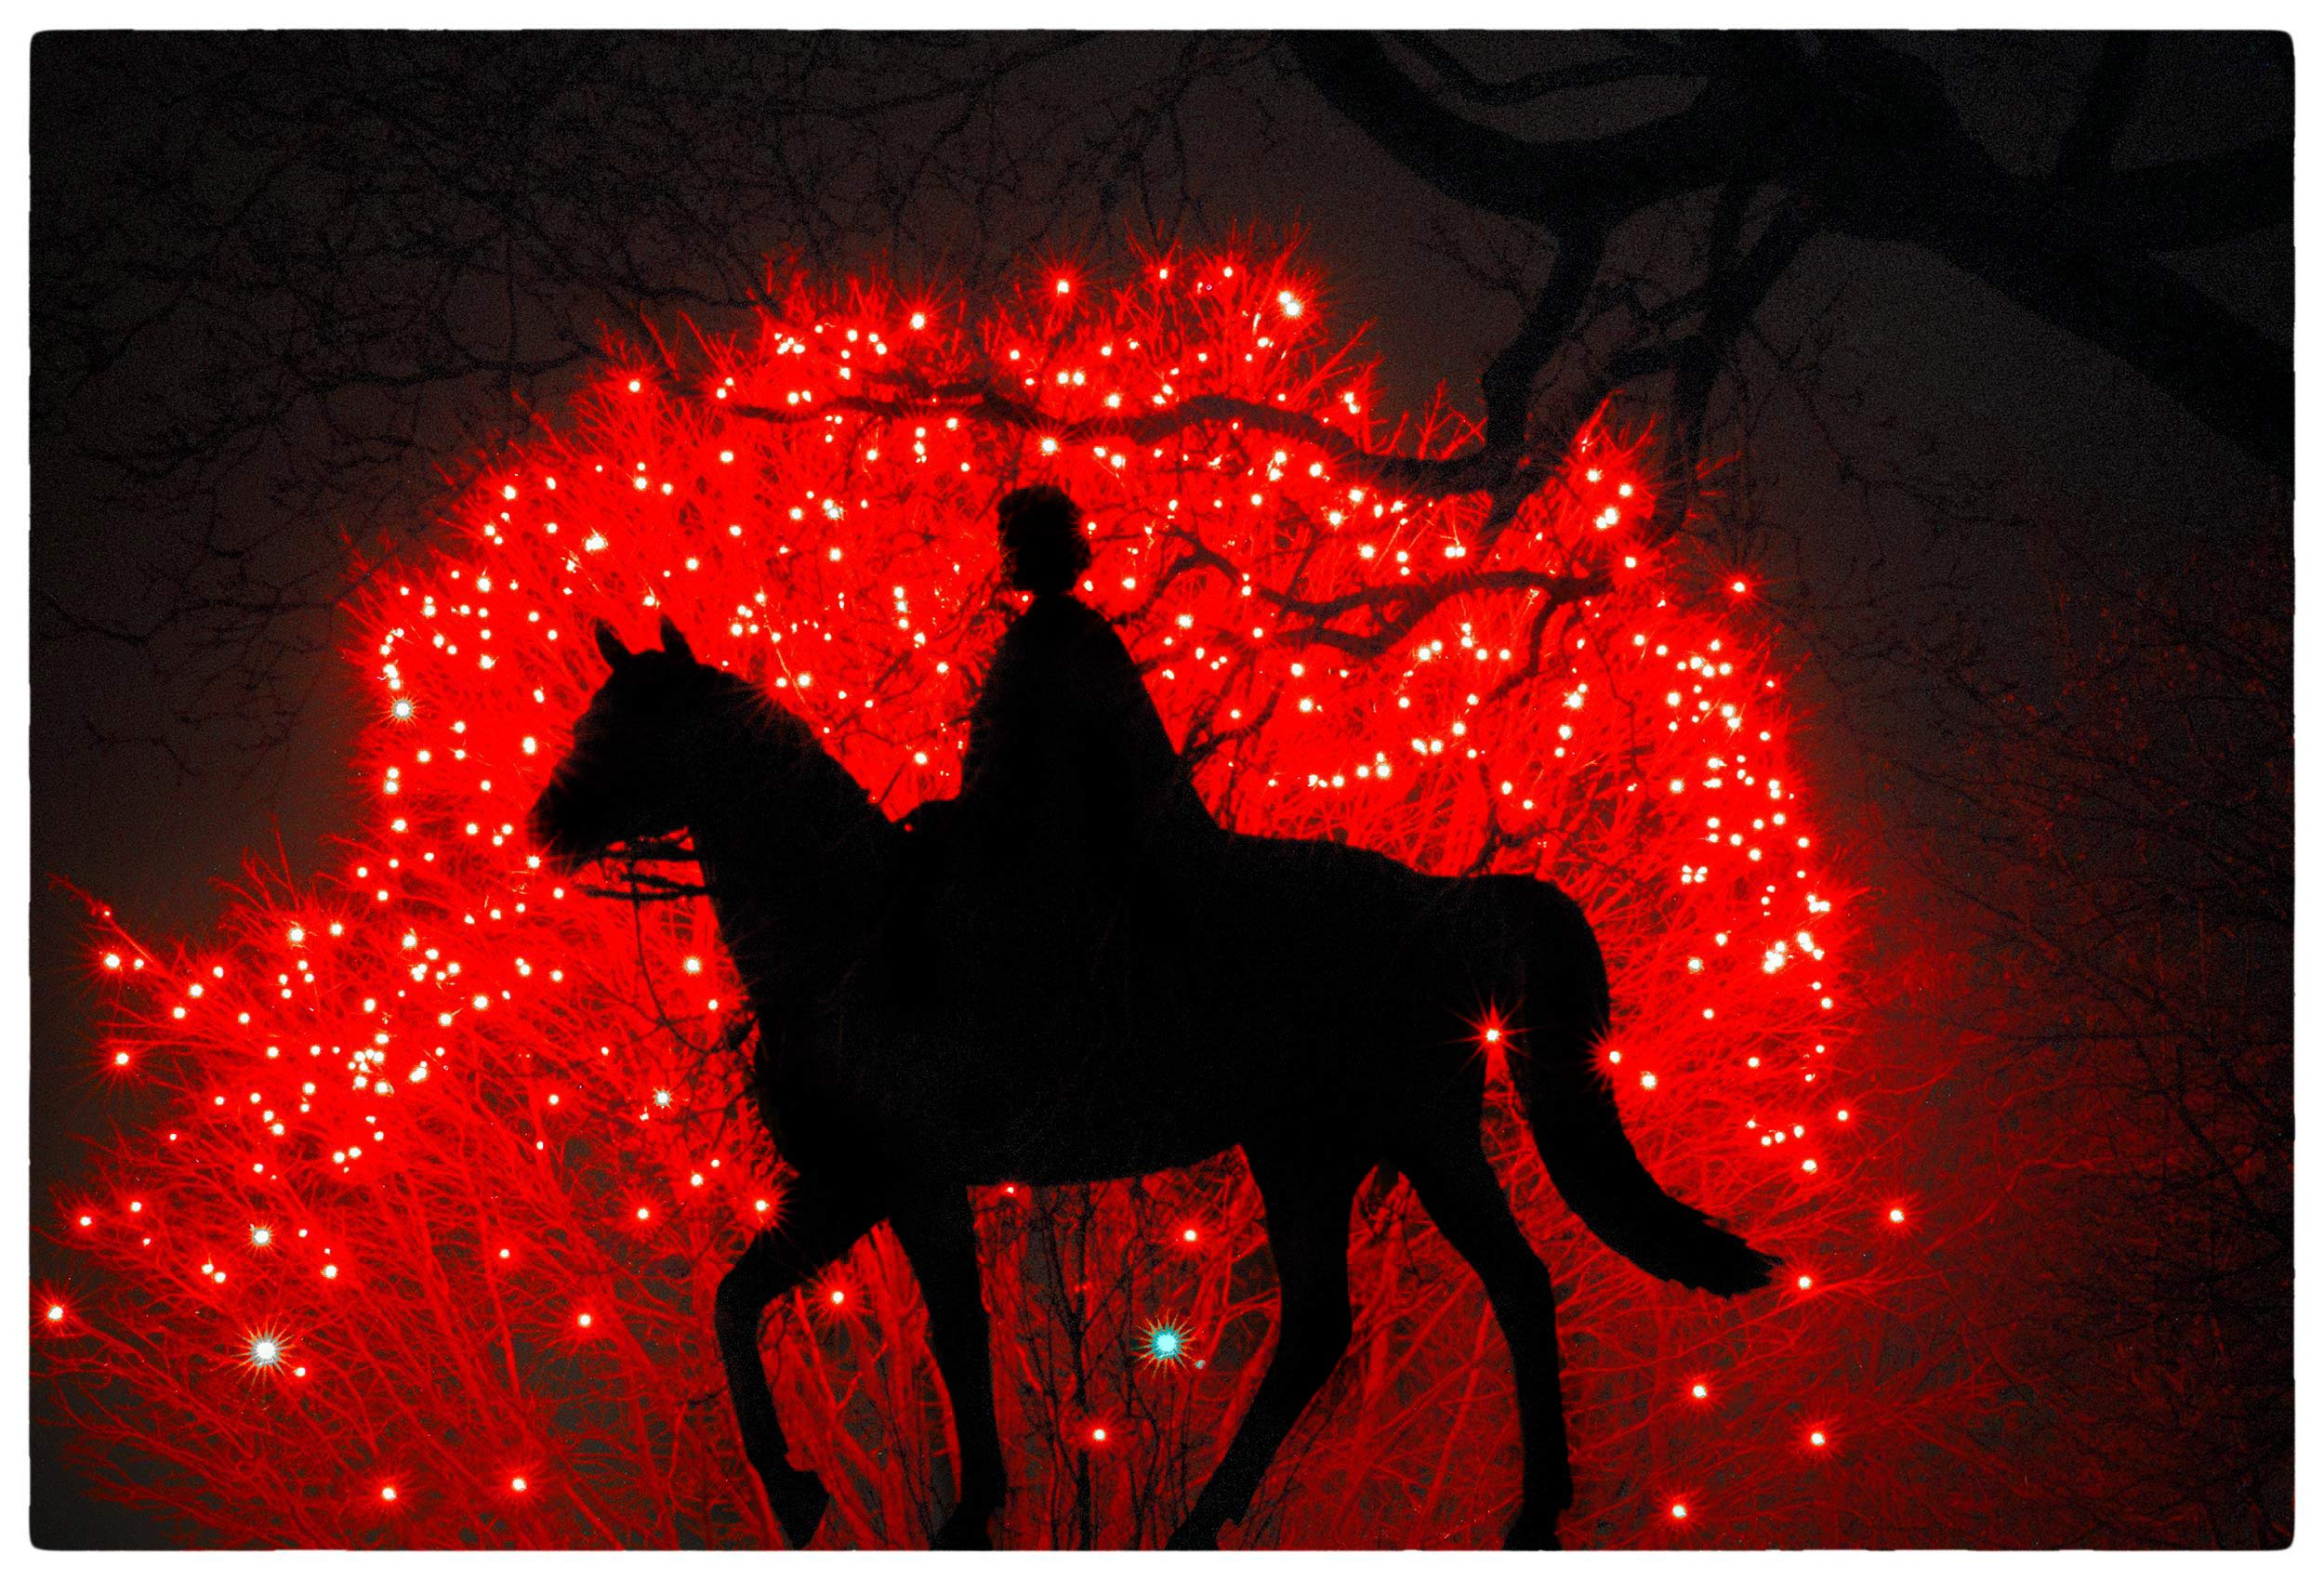 a-statue-of-queen-elizabeth-on-horseback-is-silouetted-against-a-set-of-red-christmas-lights-on-parliament-hill-in-ottawa-canada-copy